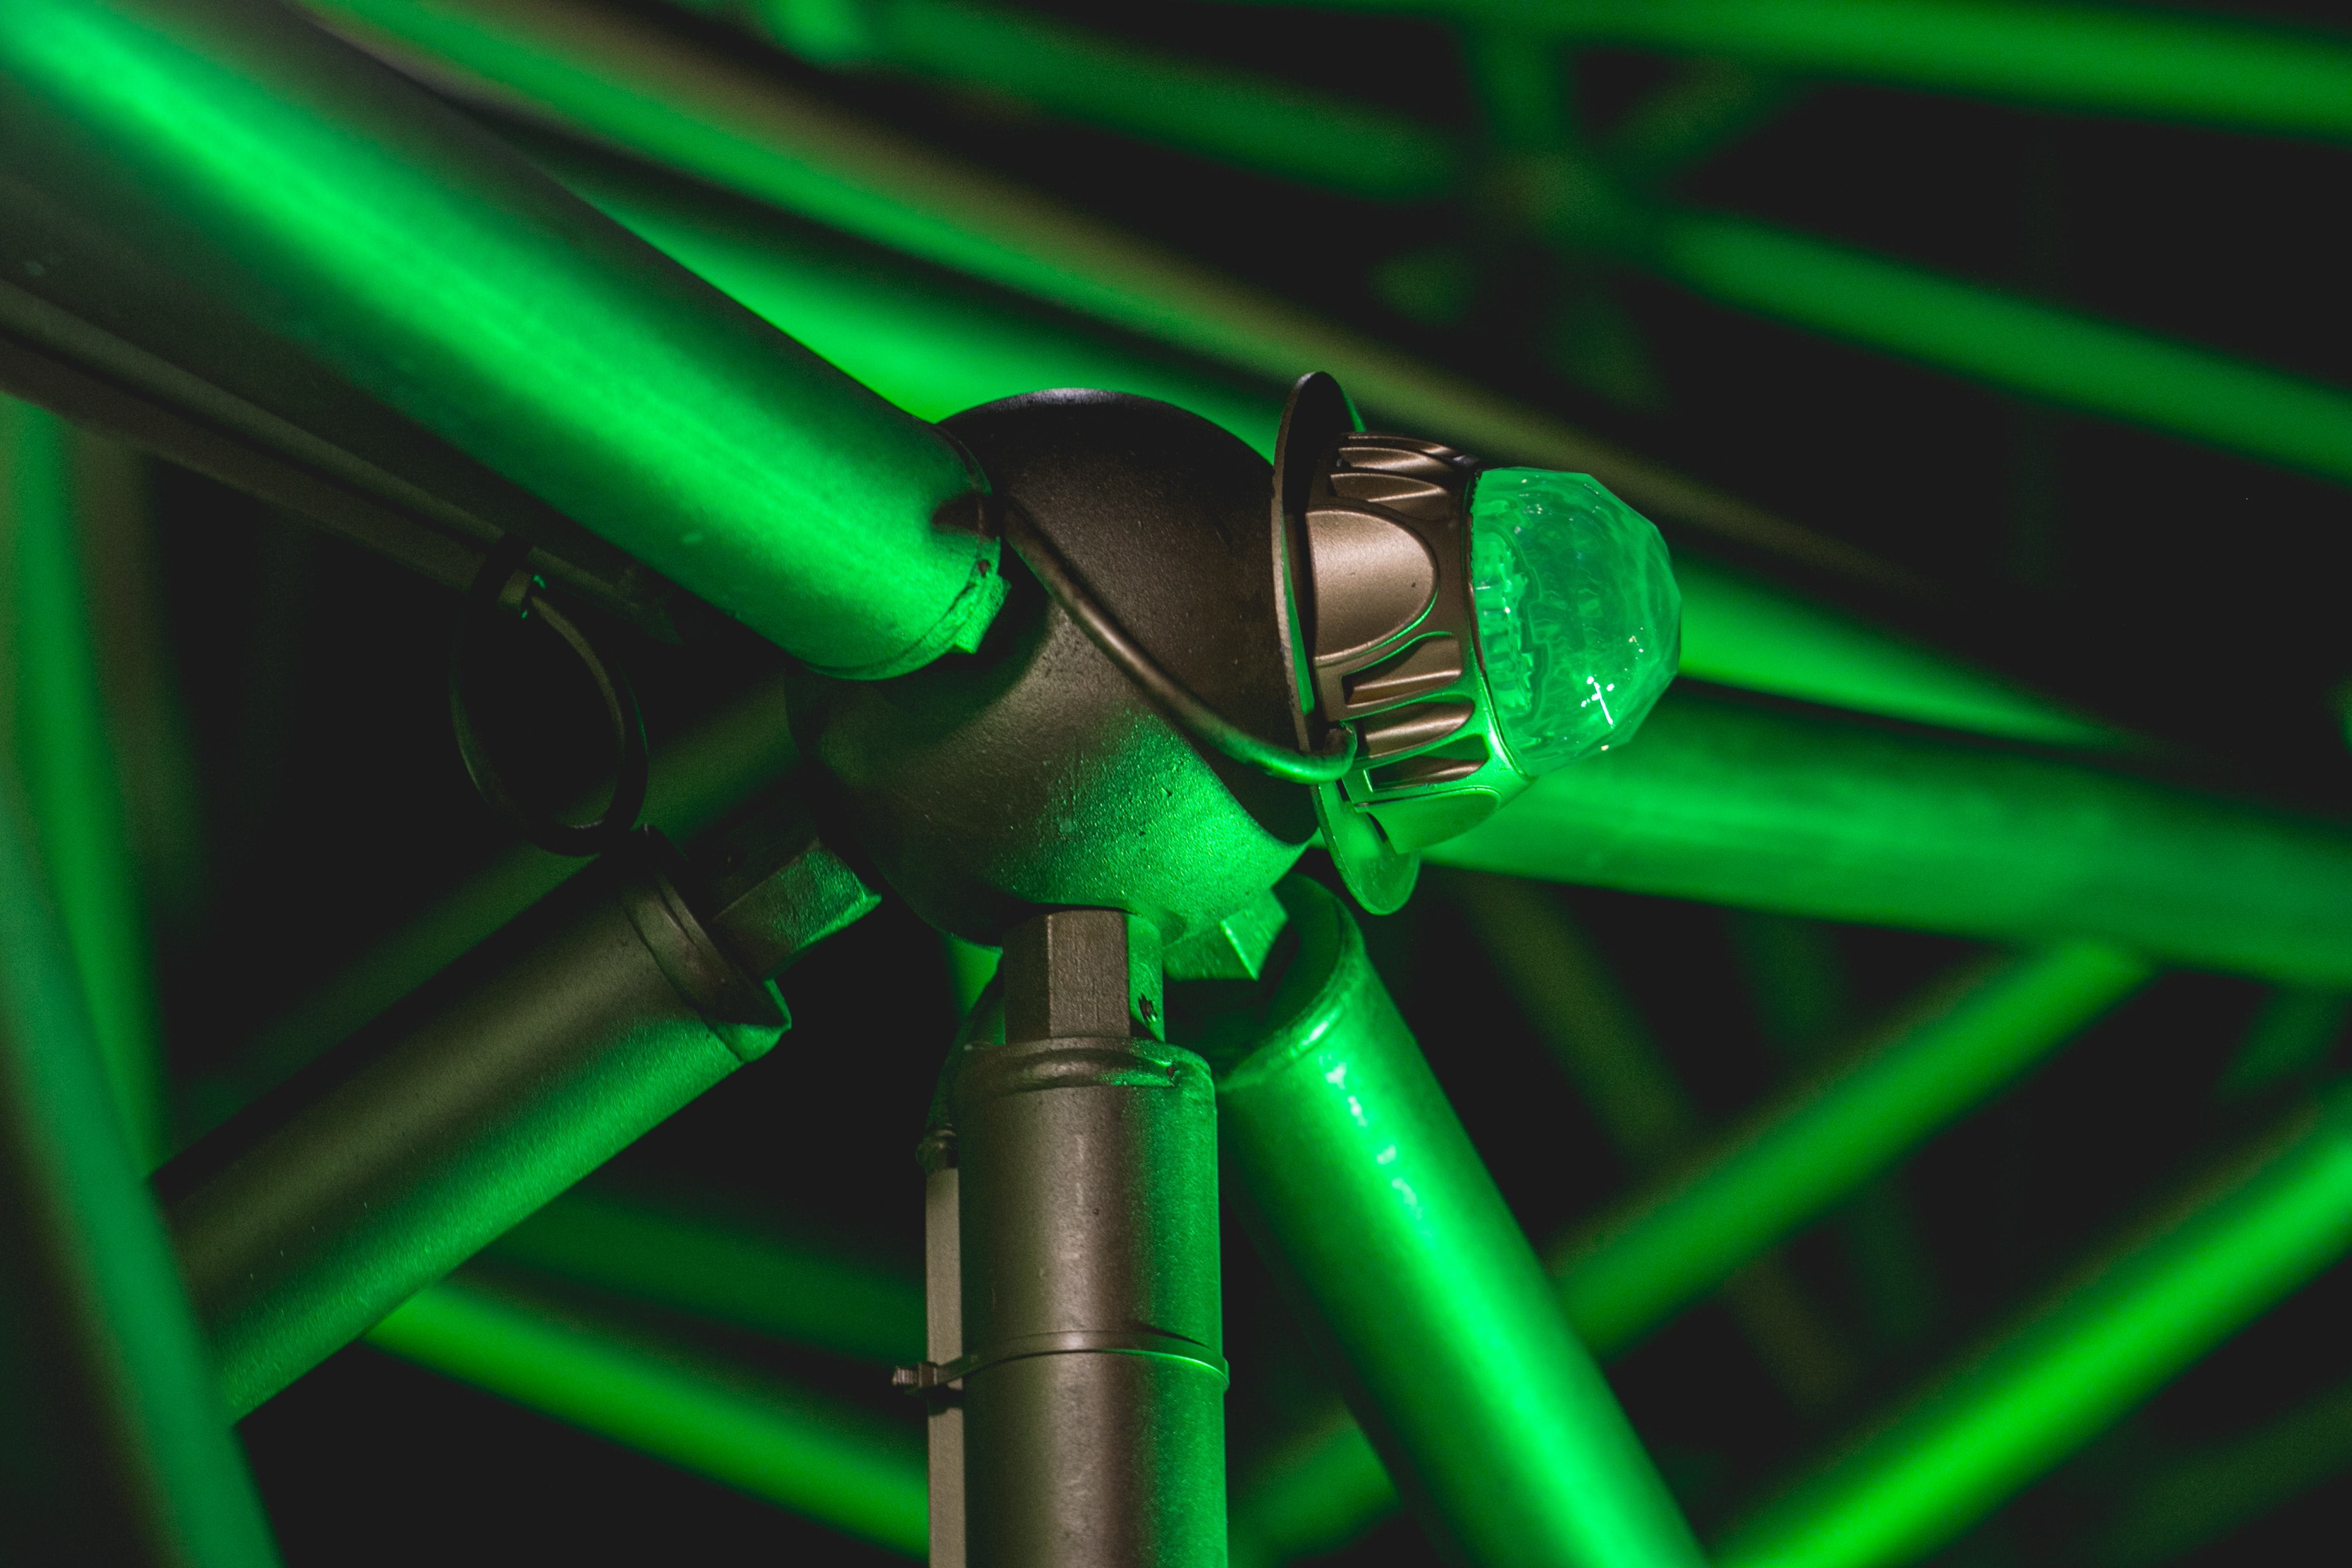 green and black steel bars